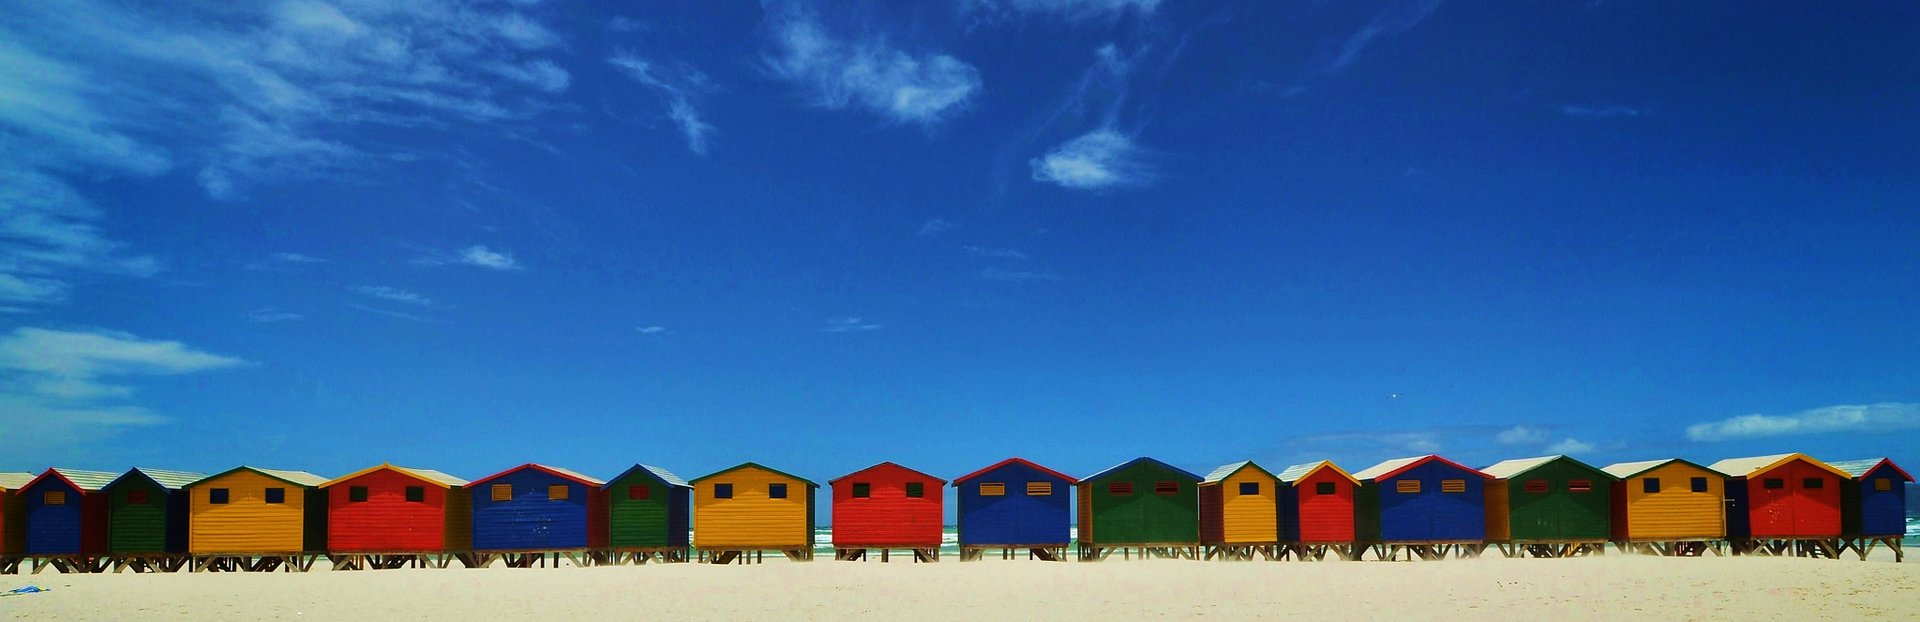 Cape Town audio tour: Muizenberg to Kalk Bay: a Coastal Stroll